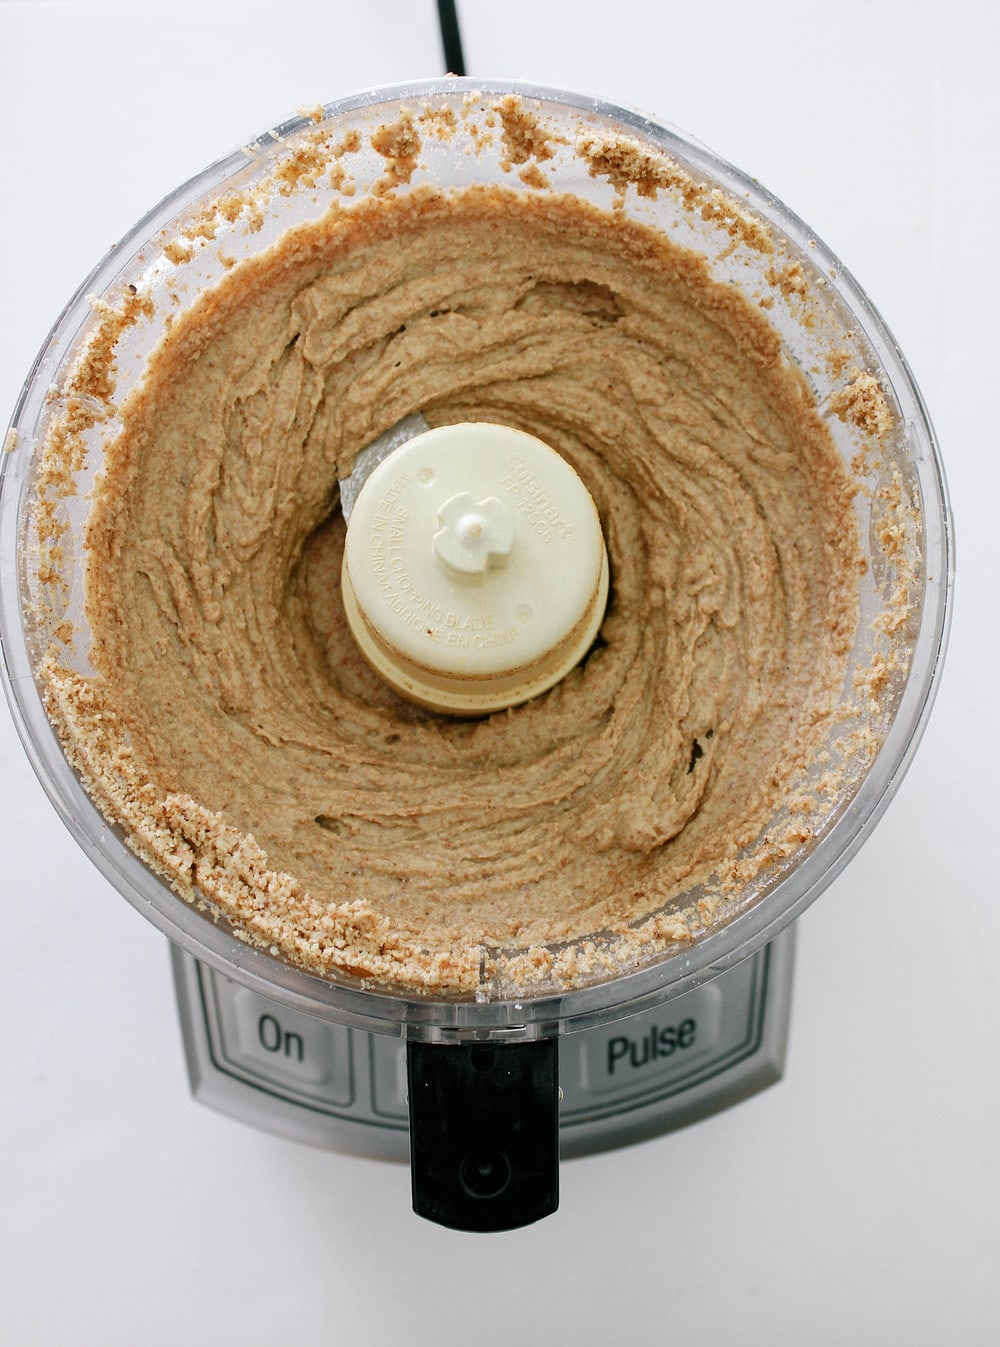 top down view of homemade almond butter after processing in a food processor for about 15 minutes, beginning to become smooth